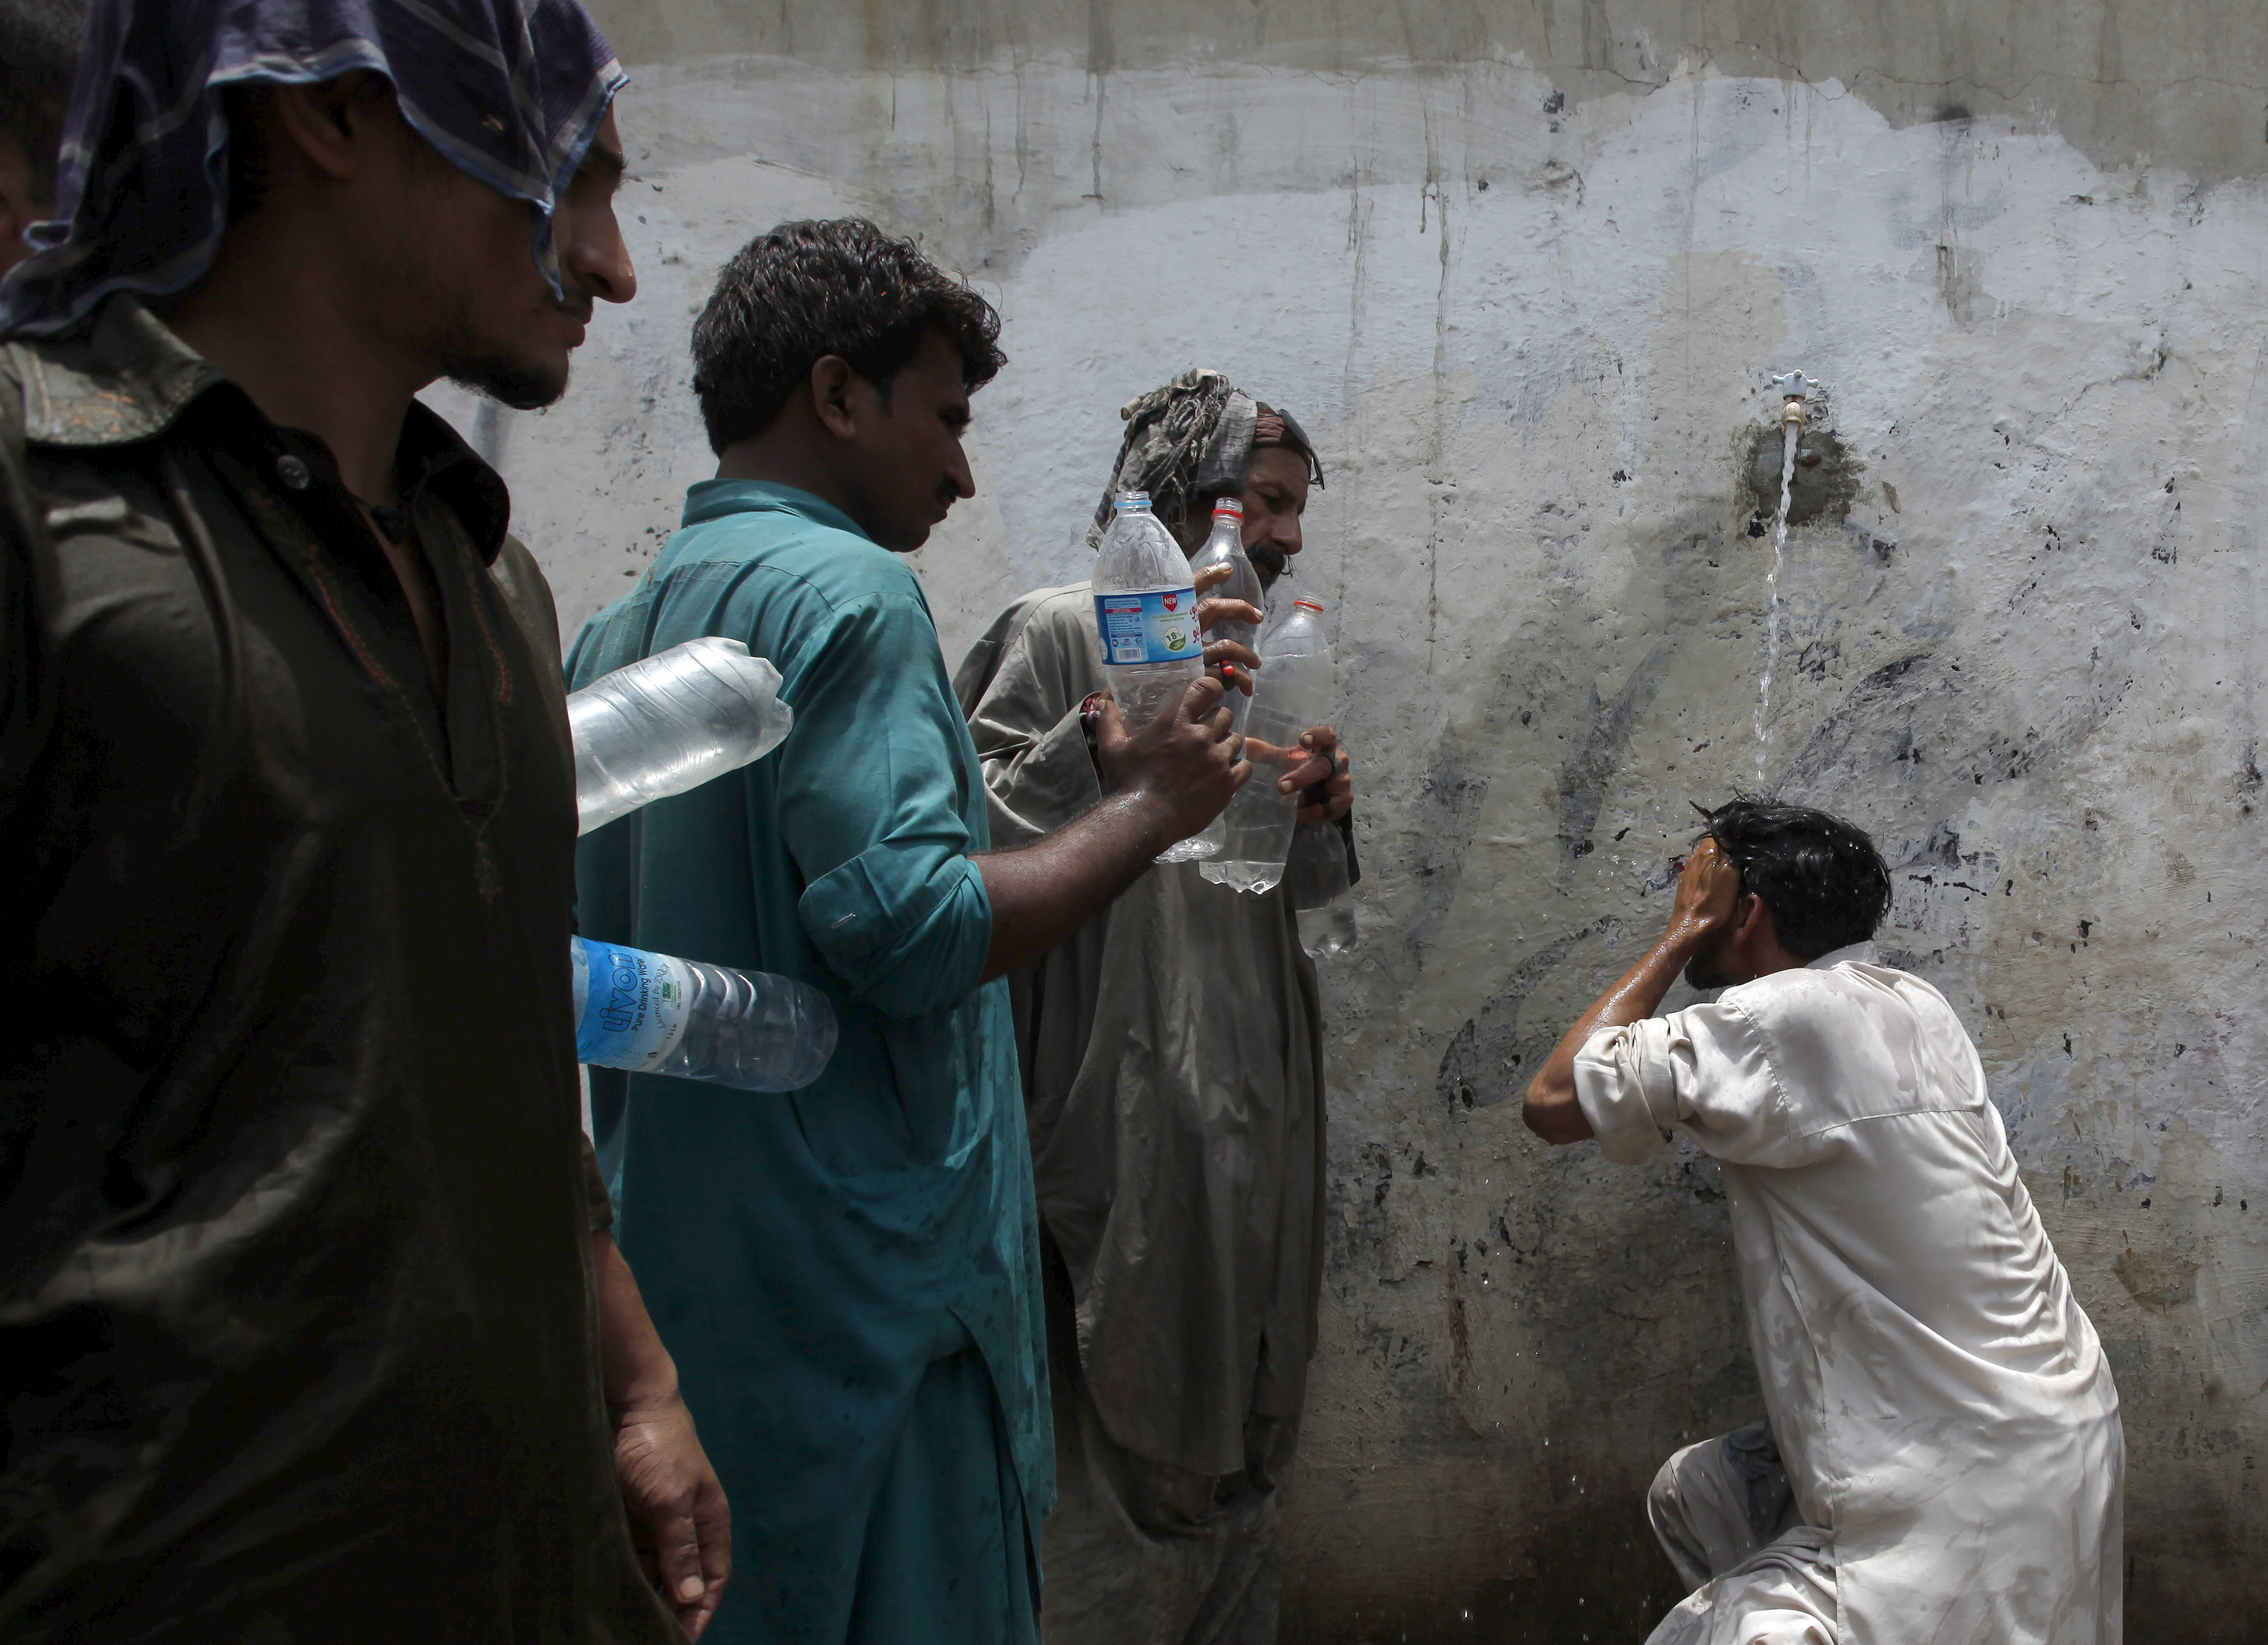 Men fill their water bottles at a public tap in Karachi, Pakistan on June 23, following days of intense heat. Photo by Akhtar Soomro/Reuters